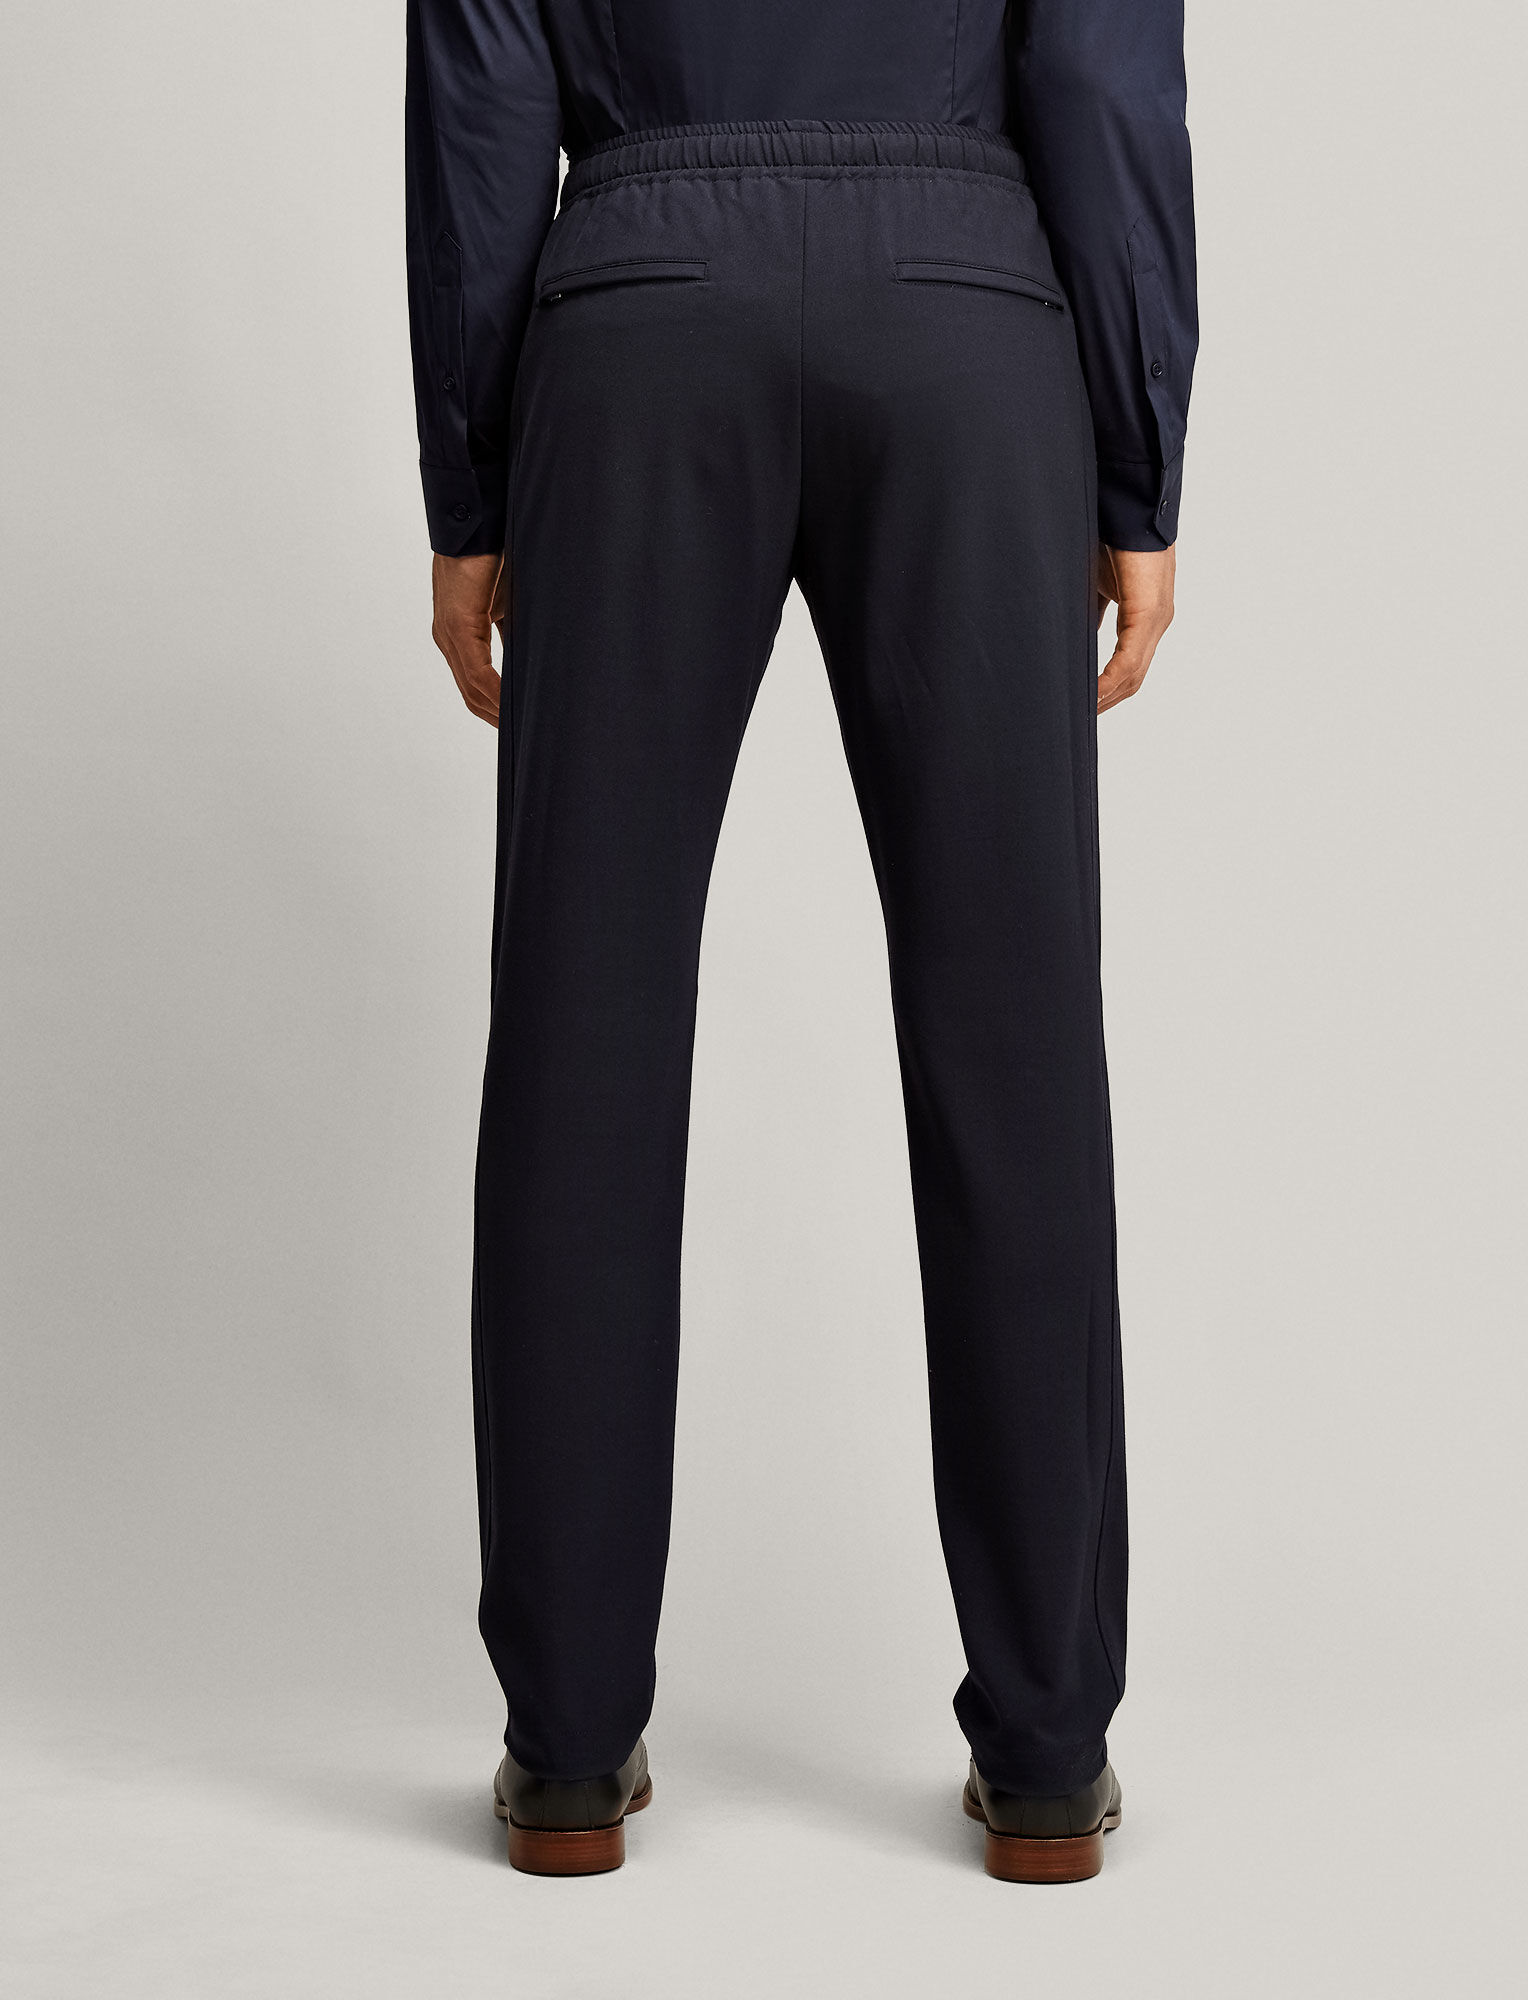 Joseph, Ettrick Techno Wool Stretch Trousers, in NAVY